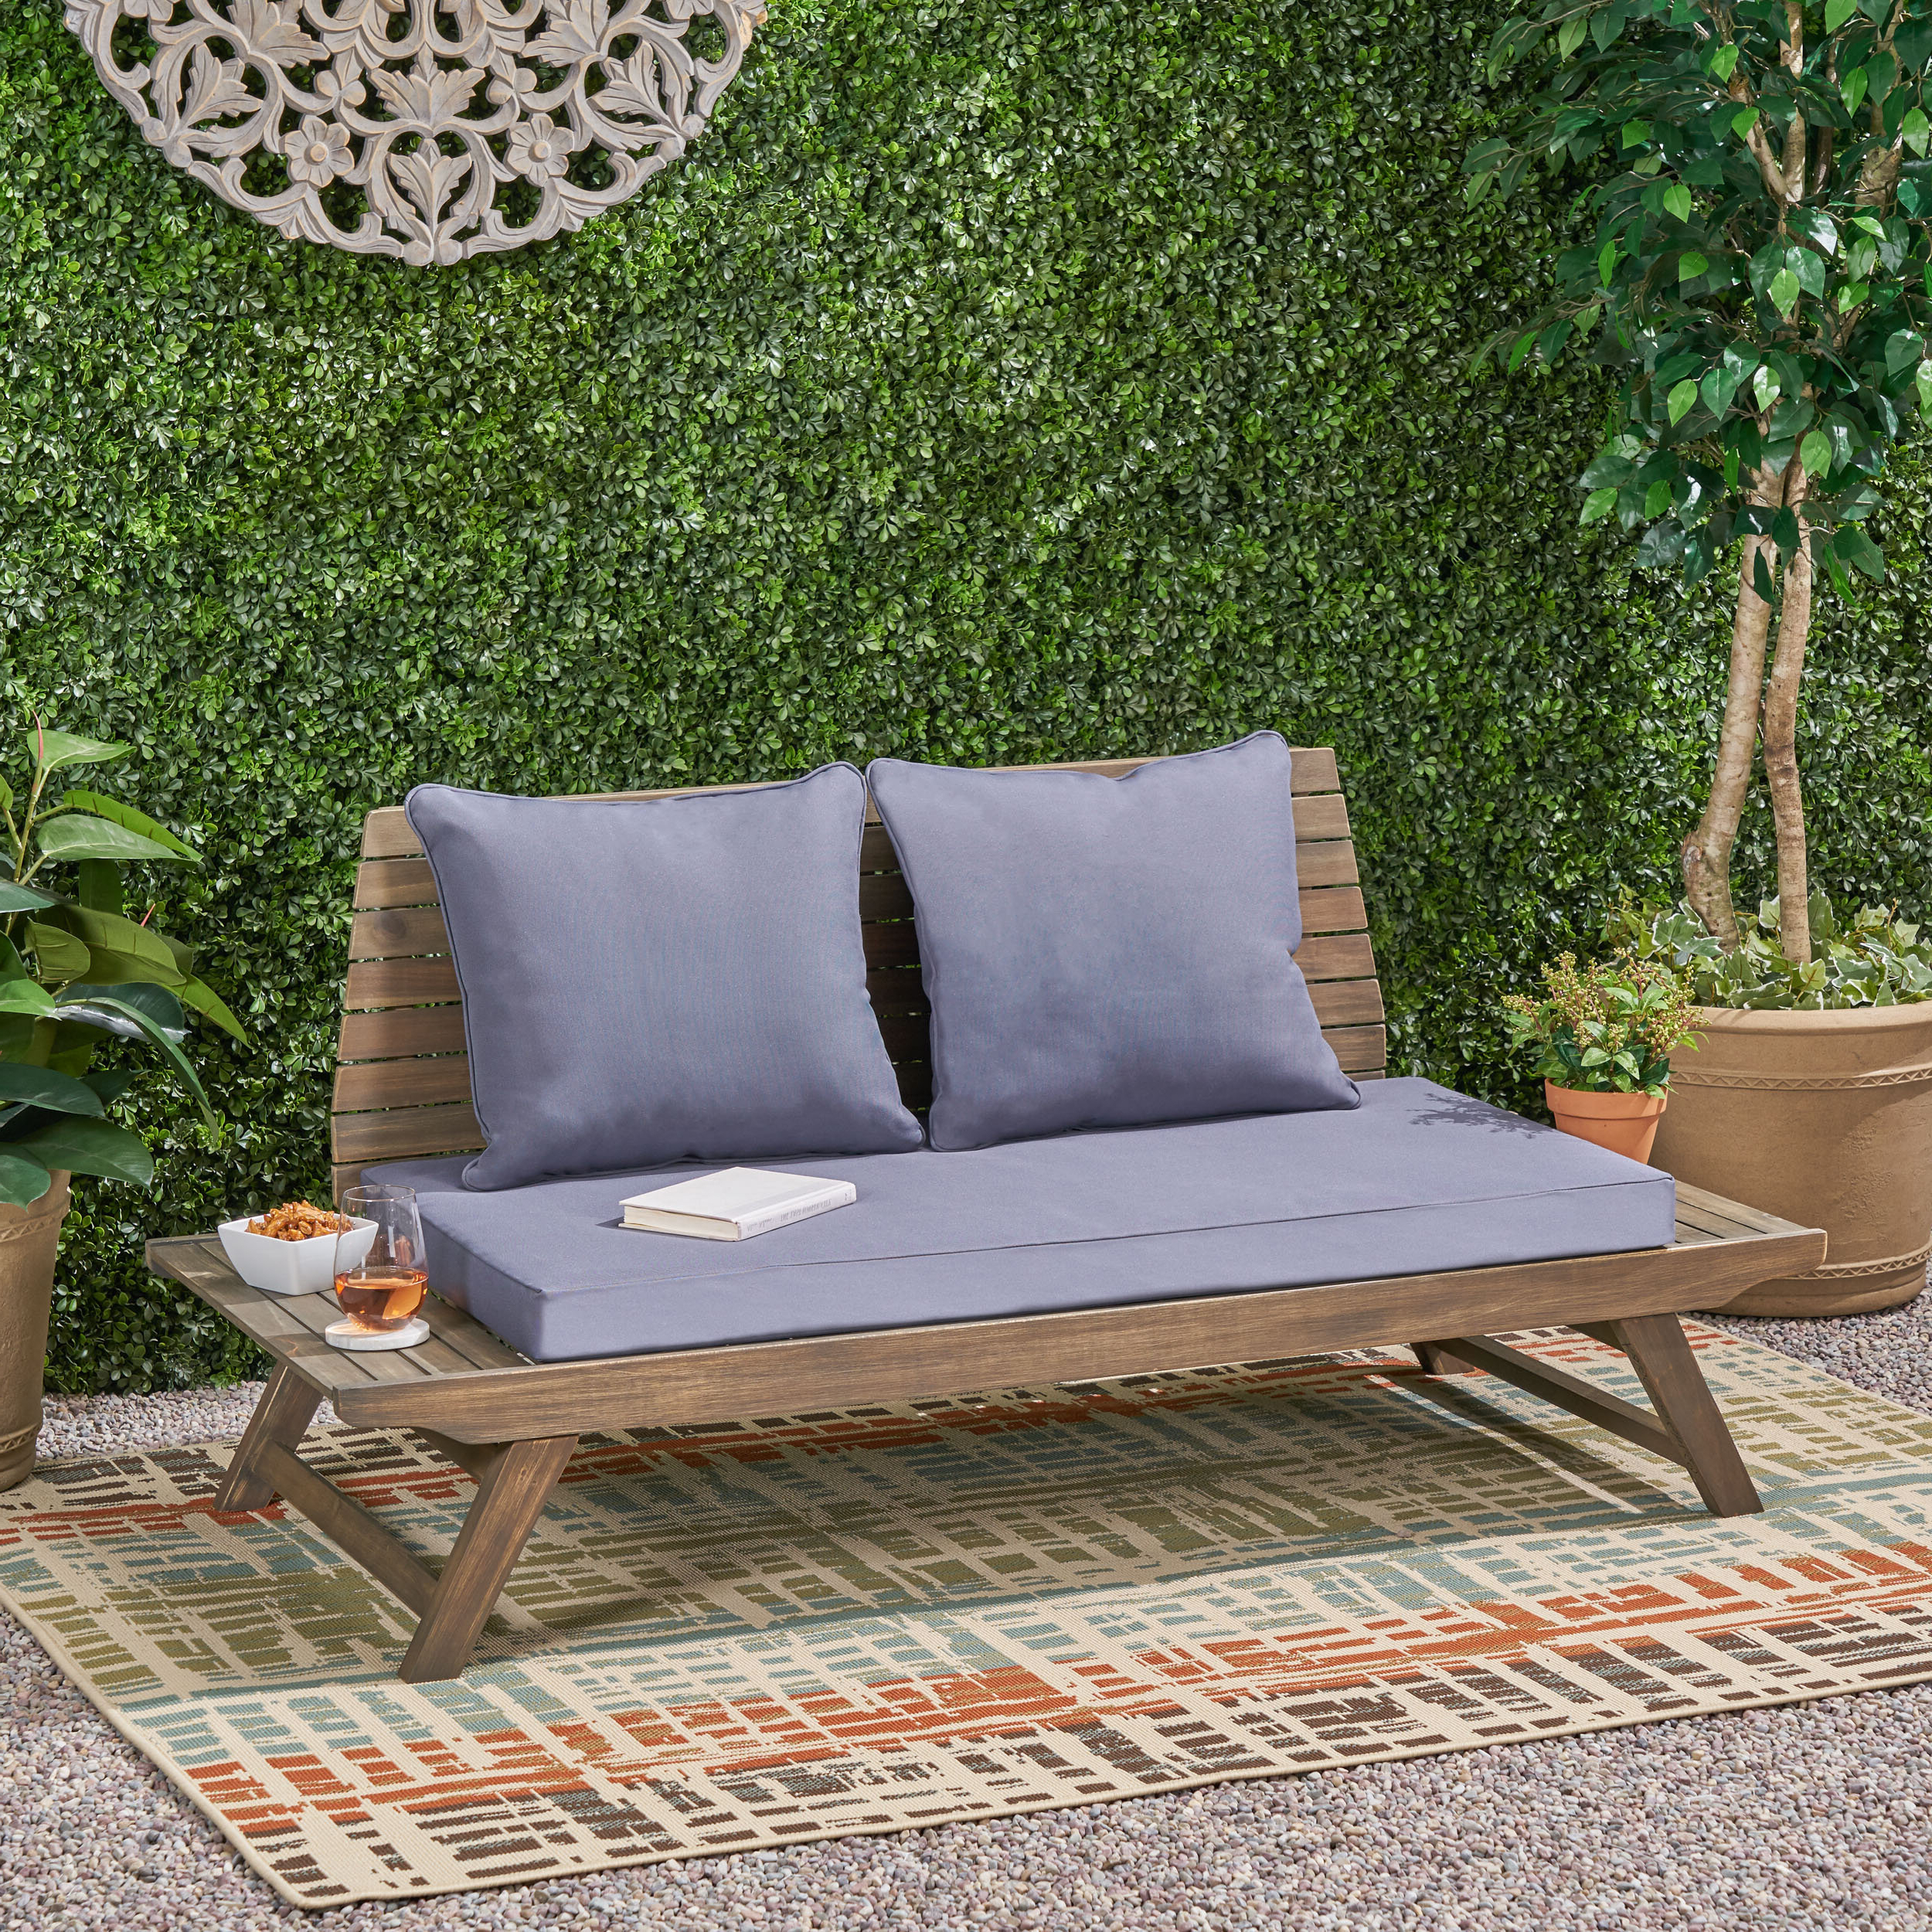 2019 Bullock Outdoor Wooden Loveseat With Cushions Inside Bullock Outdoor Wooden Loveseats With Cushions (View 2 of 20)